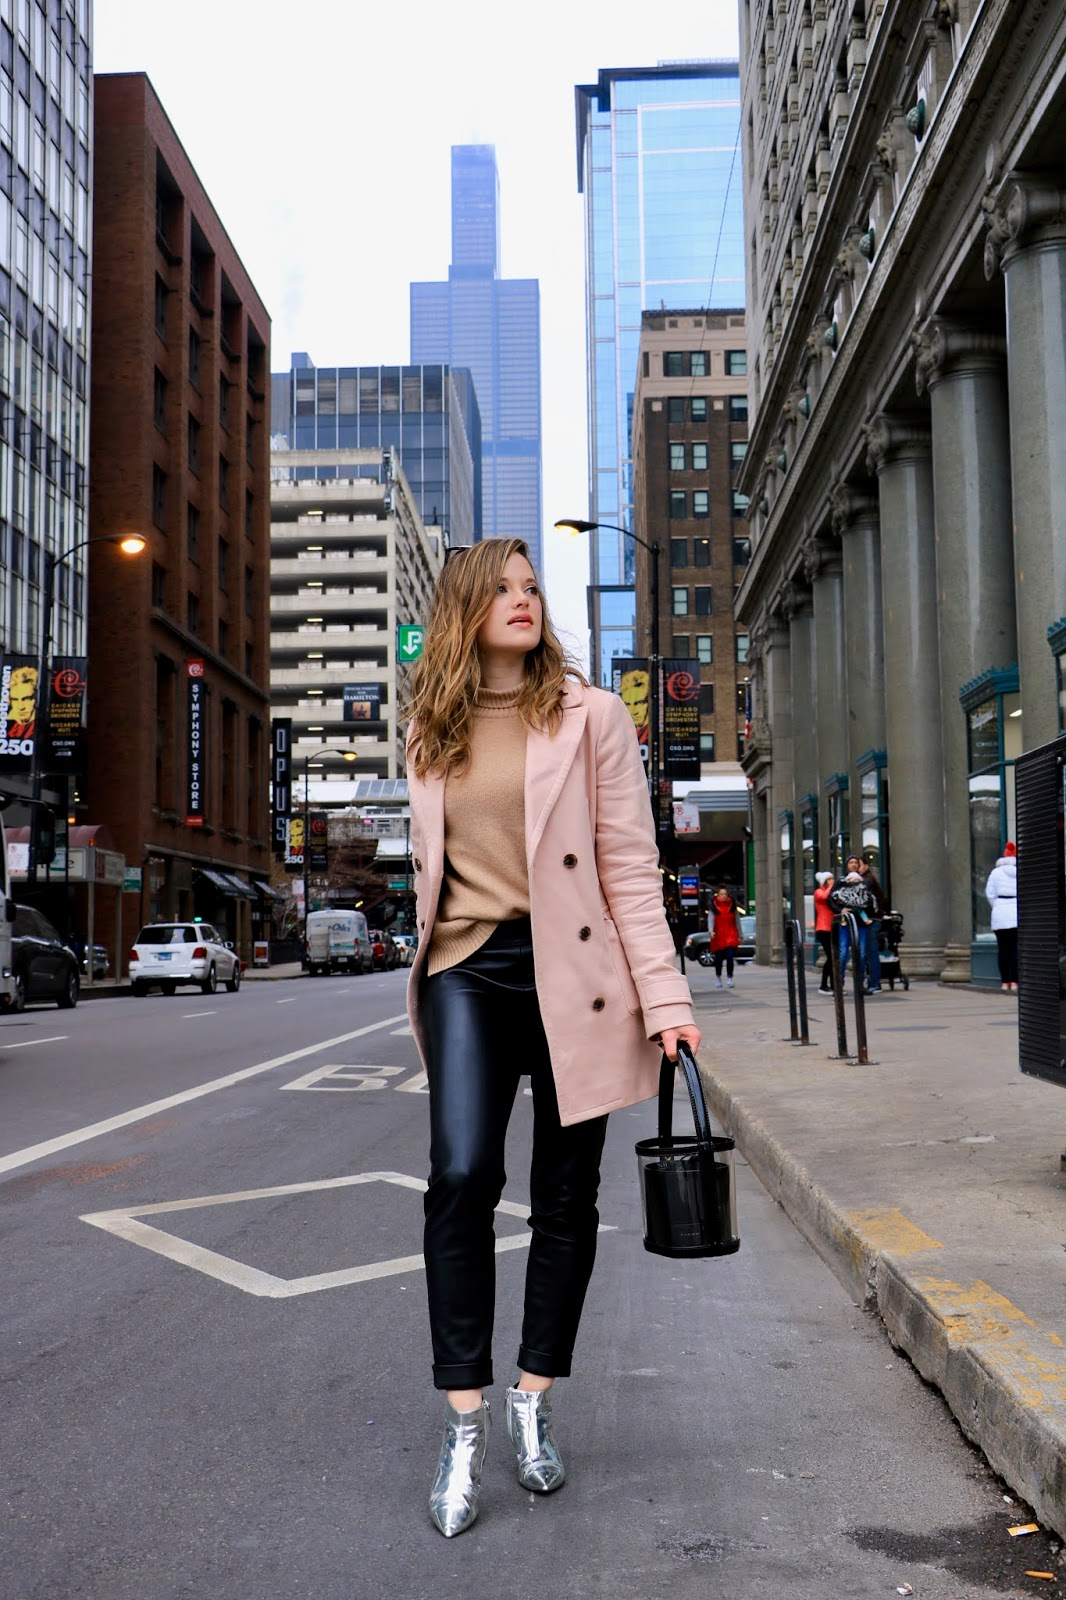 Chicago fashion blogger Kathleen Harper's winter outfit for work or date night.